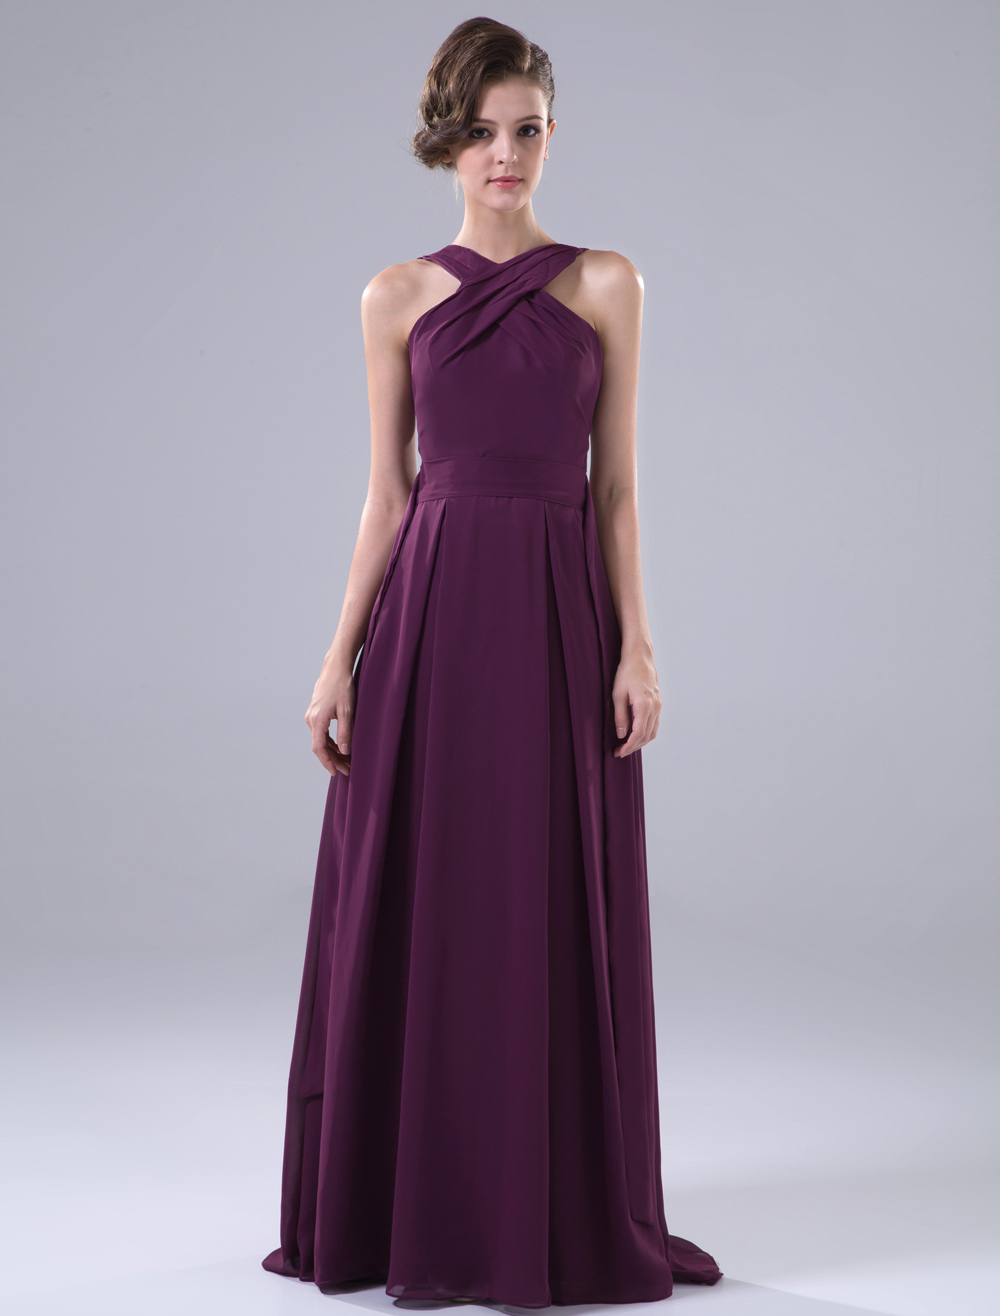 Burgundy Floor Length Halter A-line Matte Satin Chiffon Bridesmaid Dress